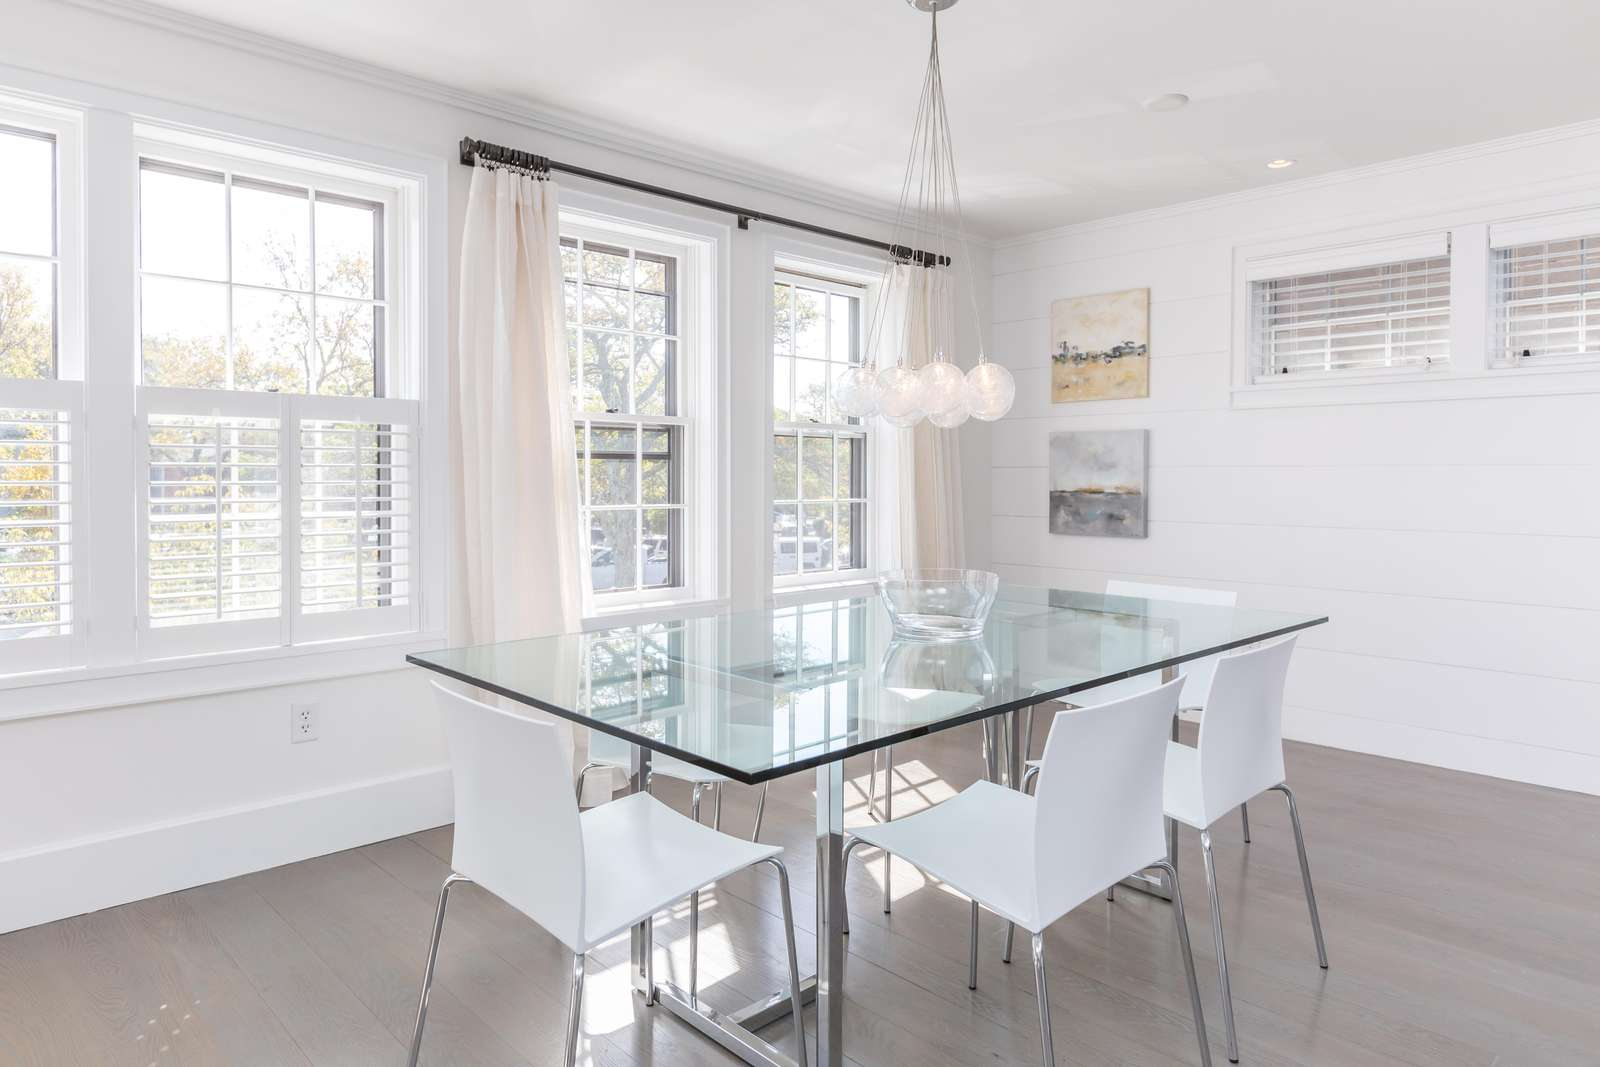 Gorgeous glass dining room table, seats 6